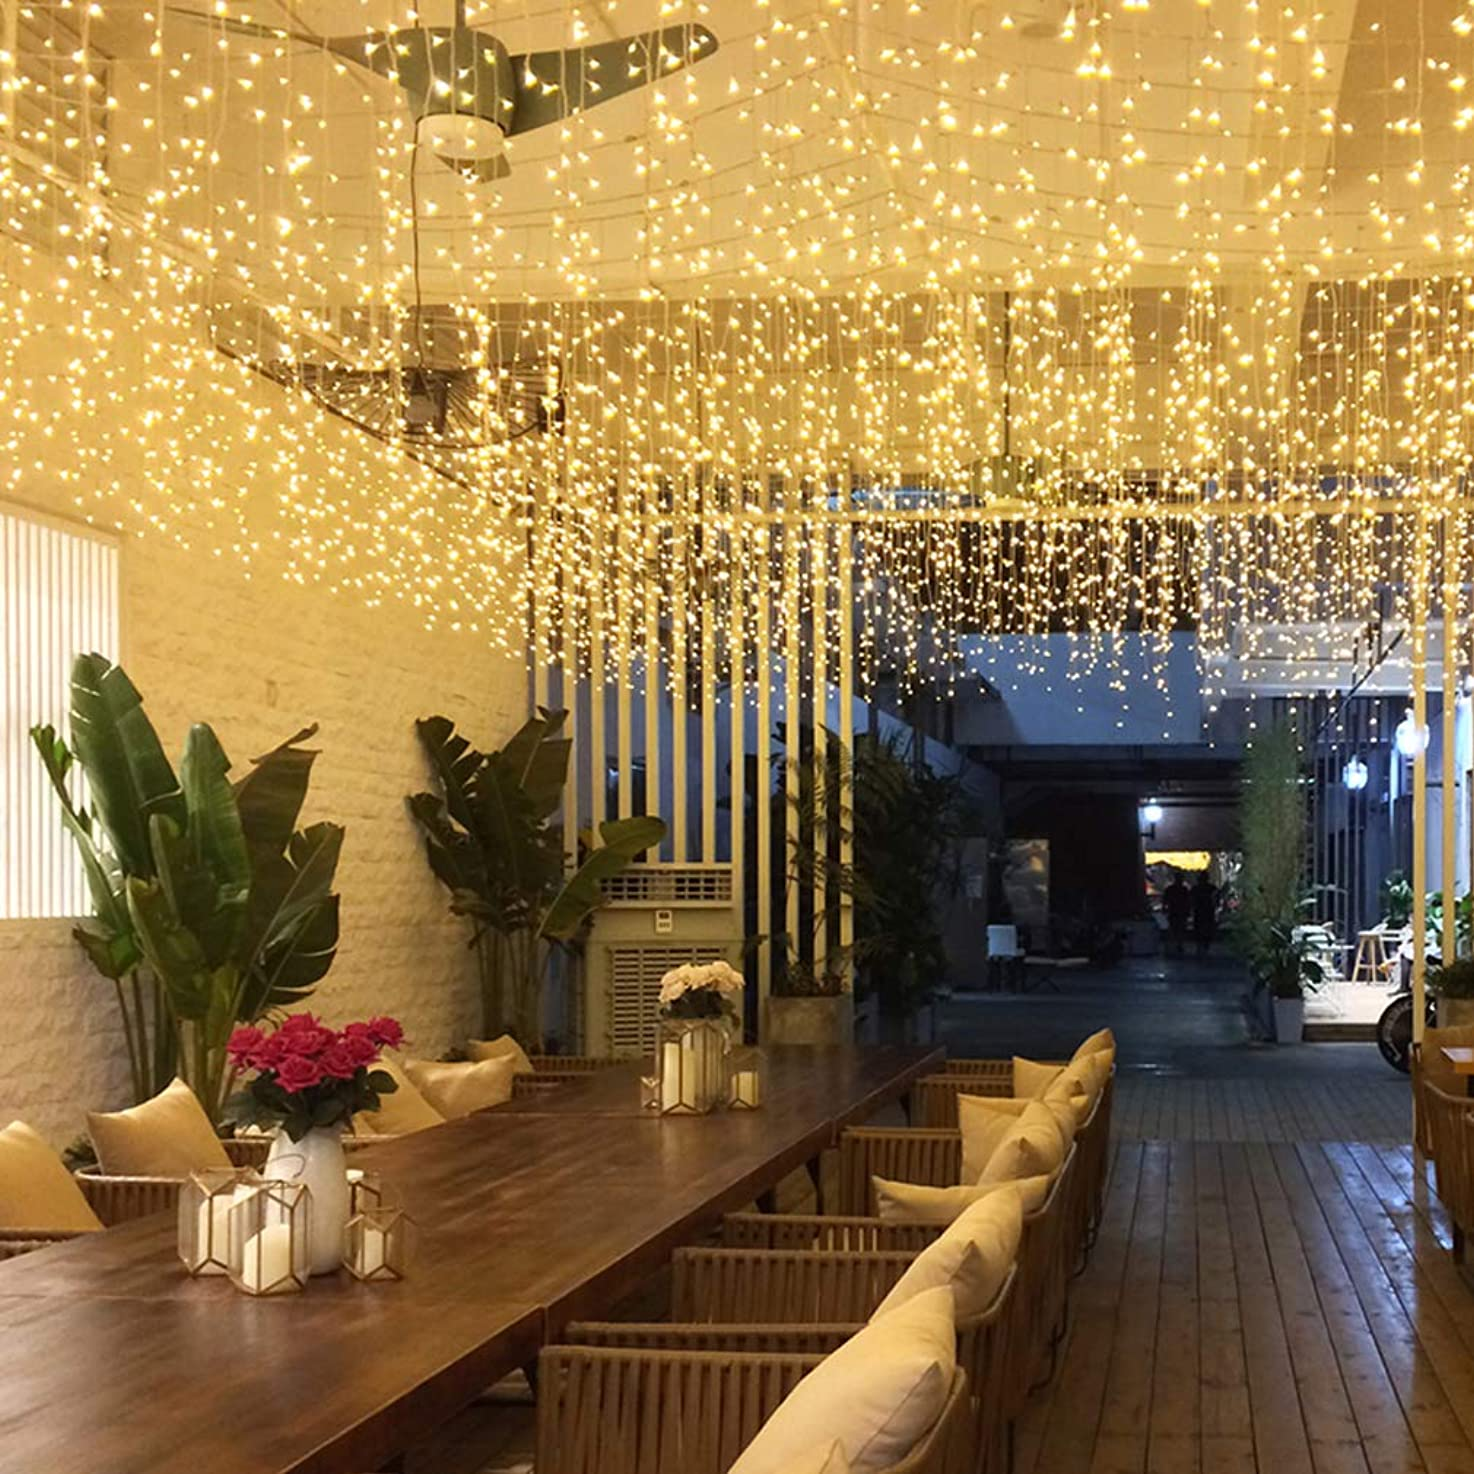 GYDING LED Window Curtain String Lights, Christmas Lcicle Lights 5M/16.4Ft 216 LED Starry Fairy String Lights Plug in 8 Modes for Wedding Party Bedroom Garden Patio Outdoor Indoor (Warm White, 5)